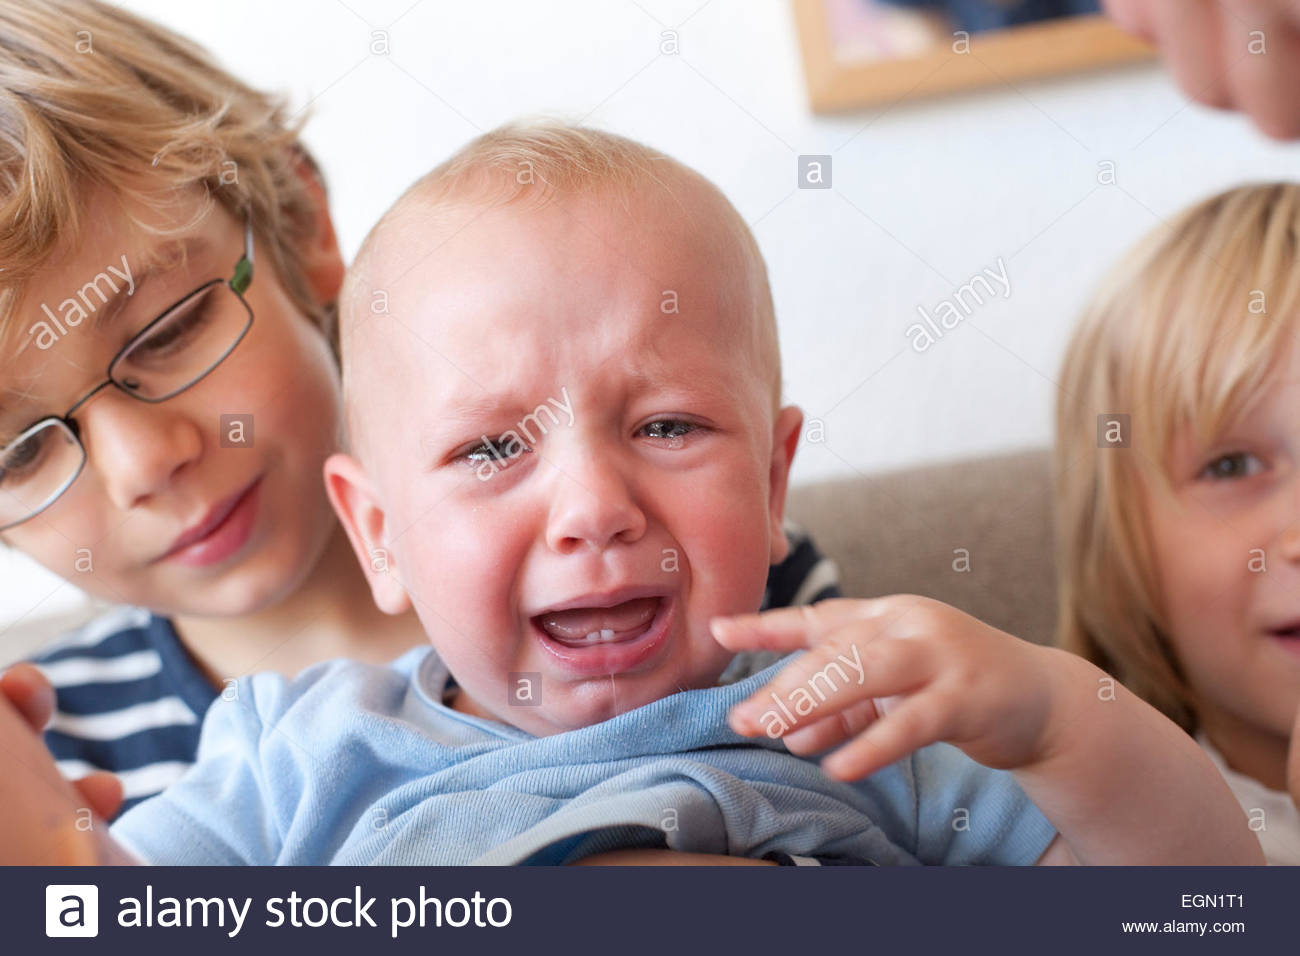 Little brother is crying, Sankt Augustin, Germany - Stock Image